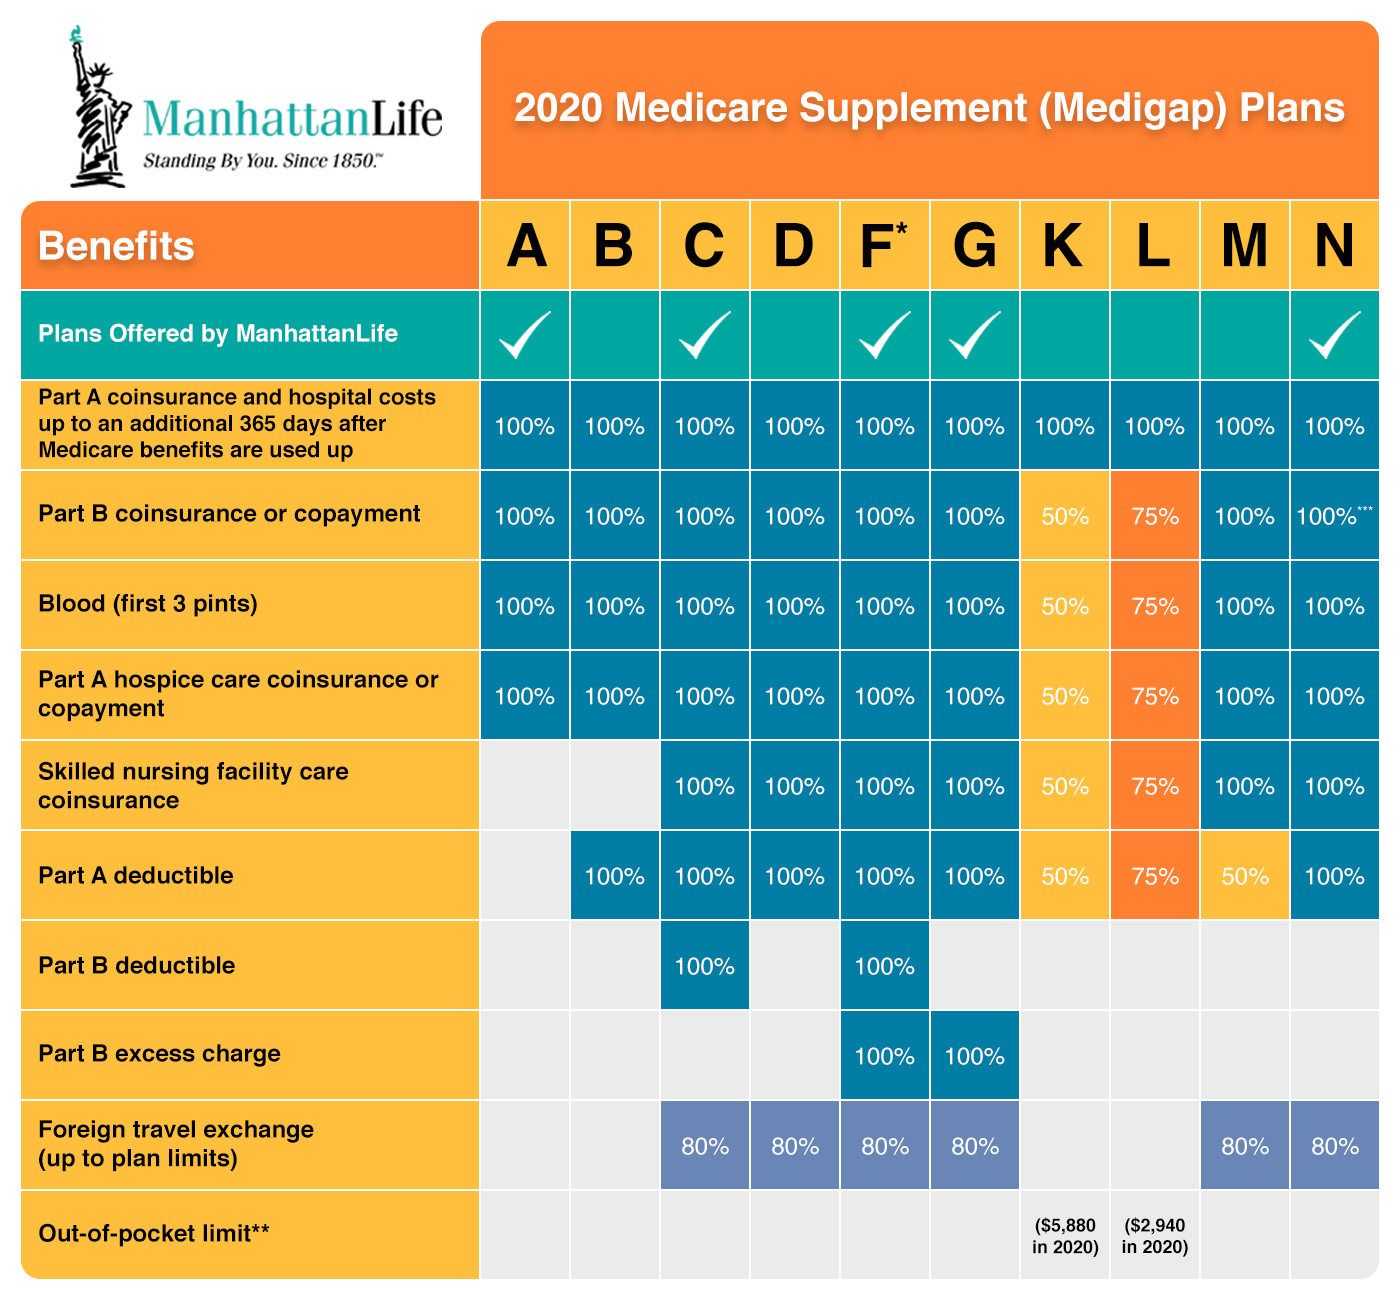 Medicare Supplement Plans and You - Know Your Options